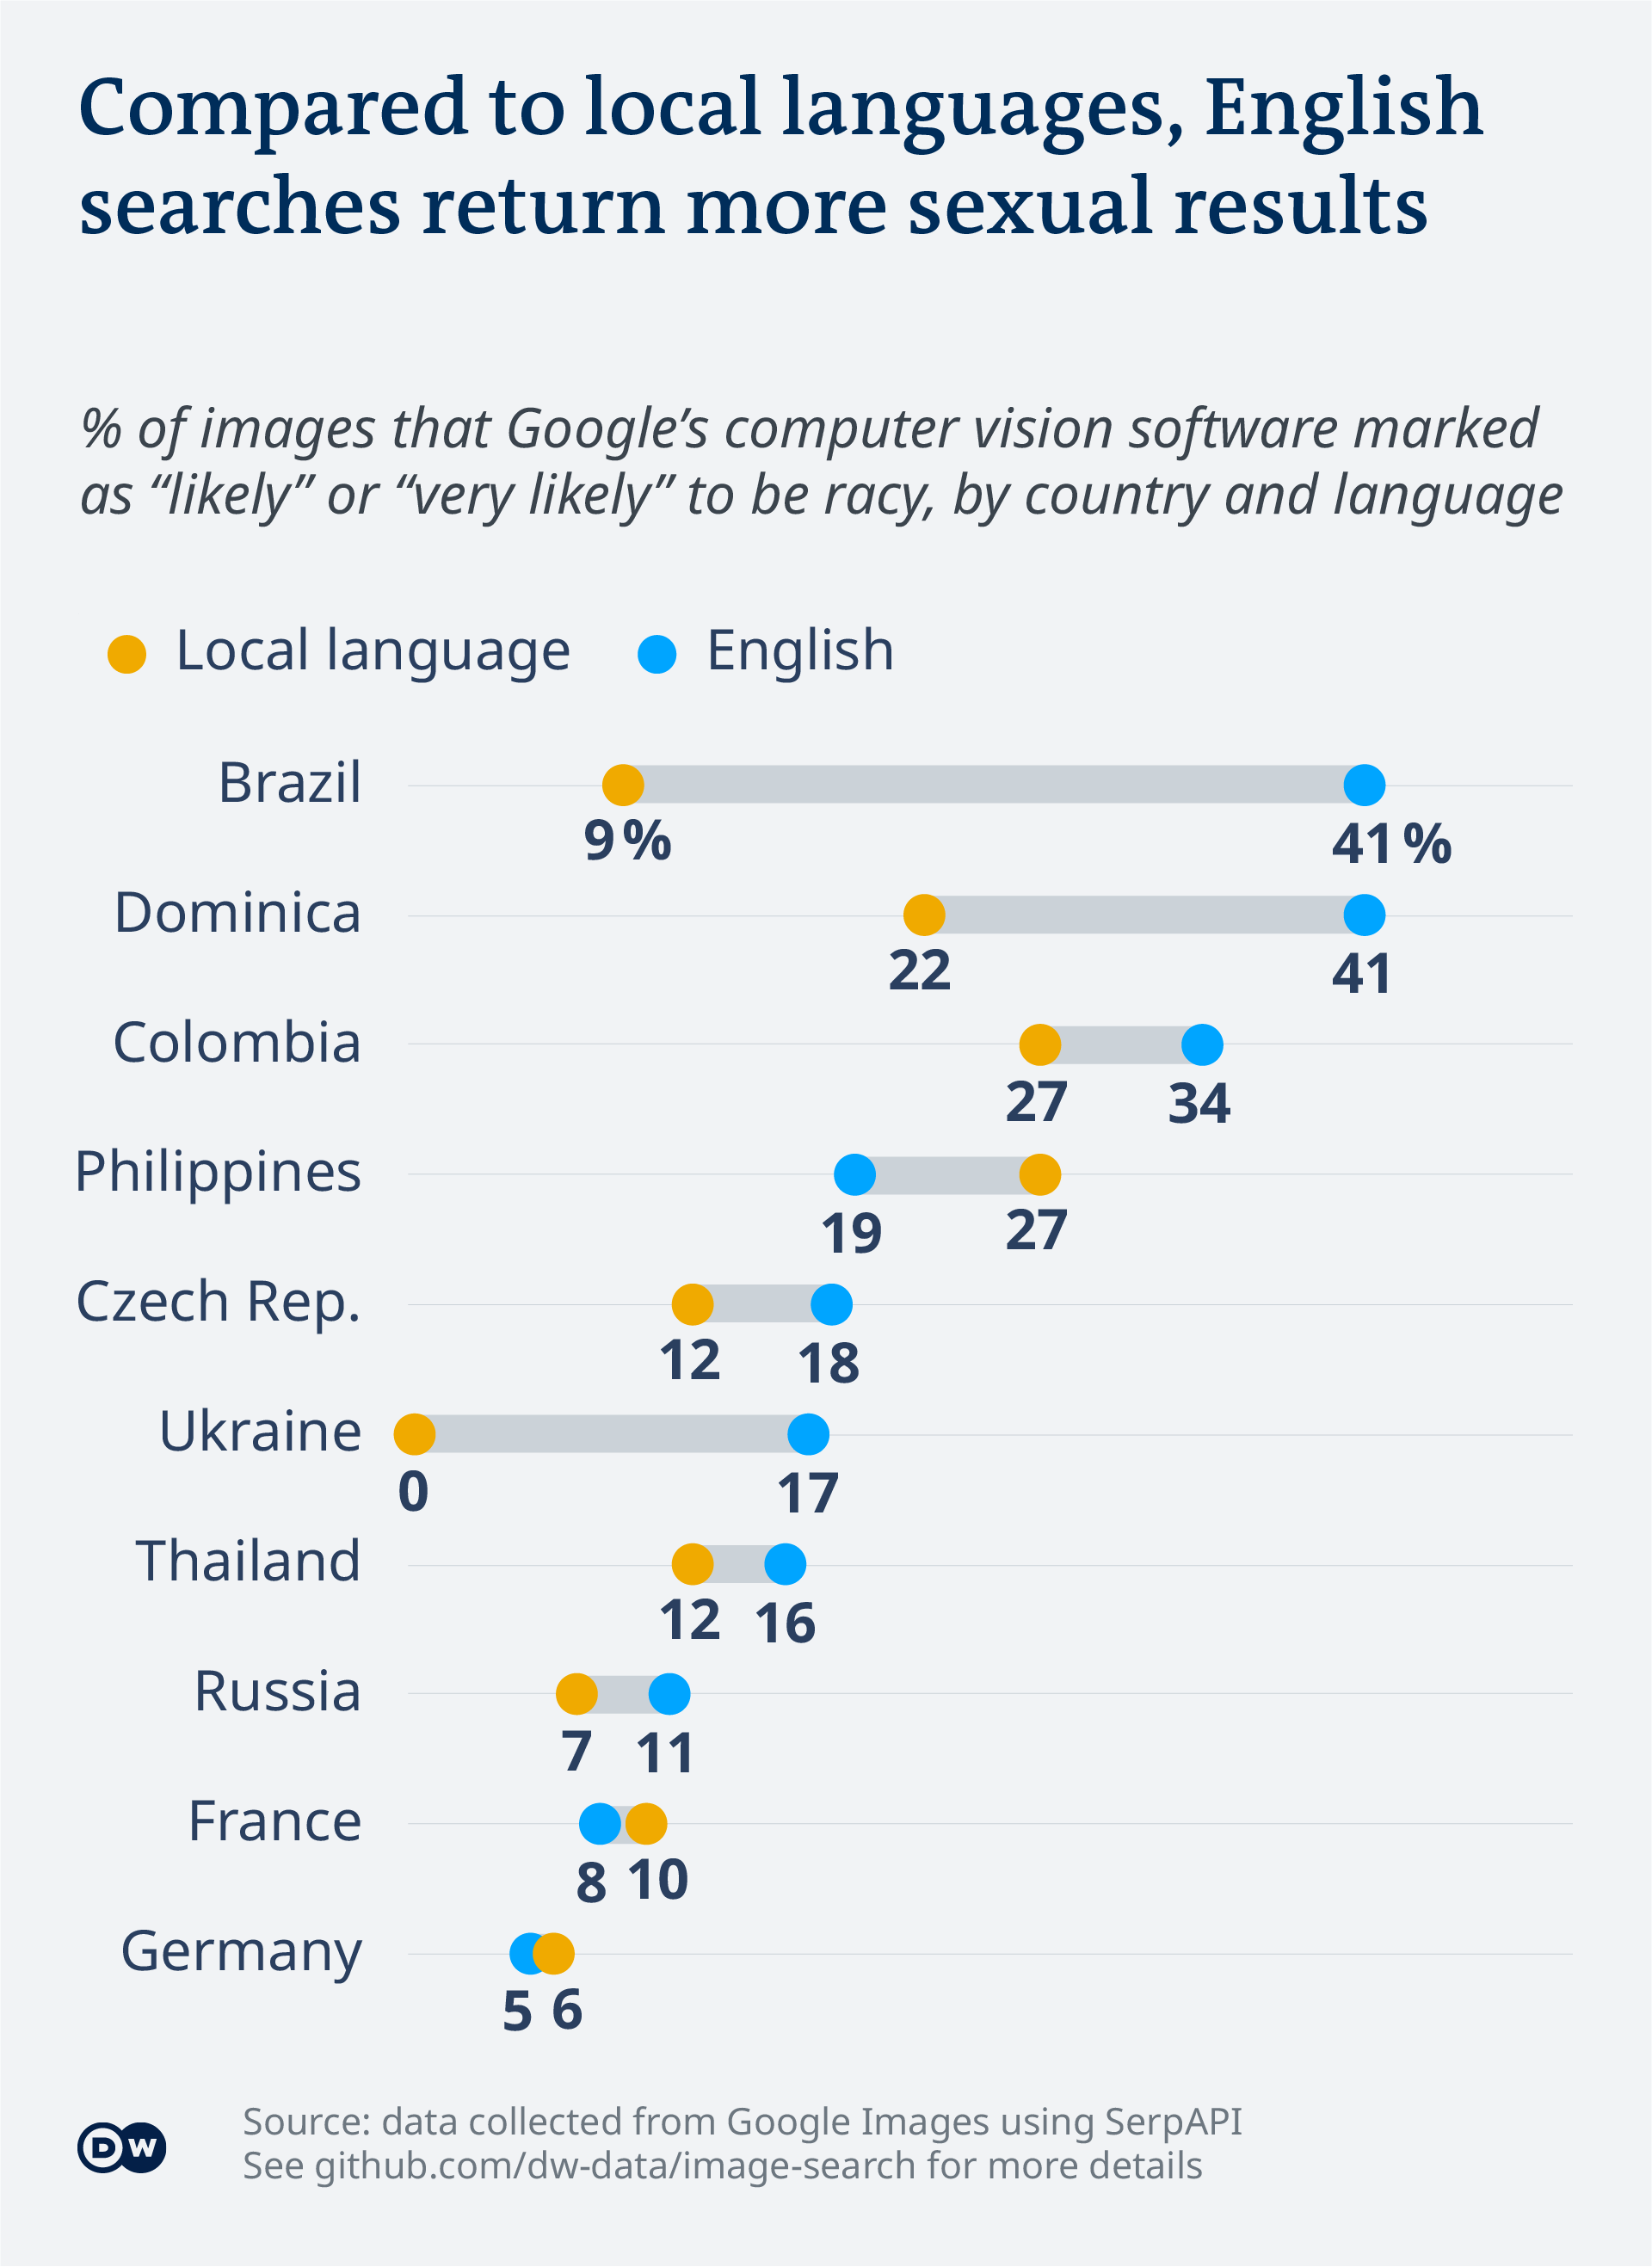 Data visualization - Google image search - Share of racy images - language comparison